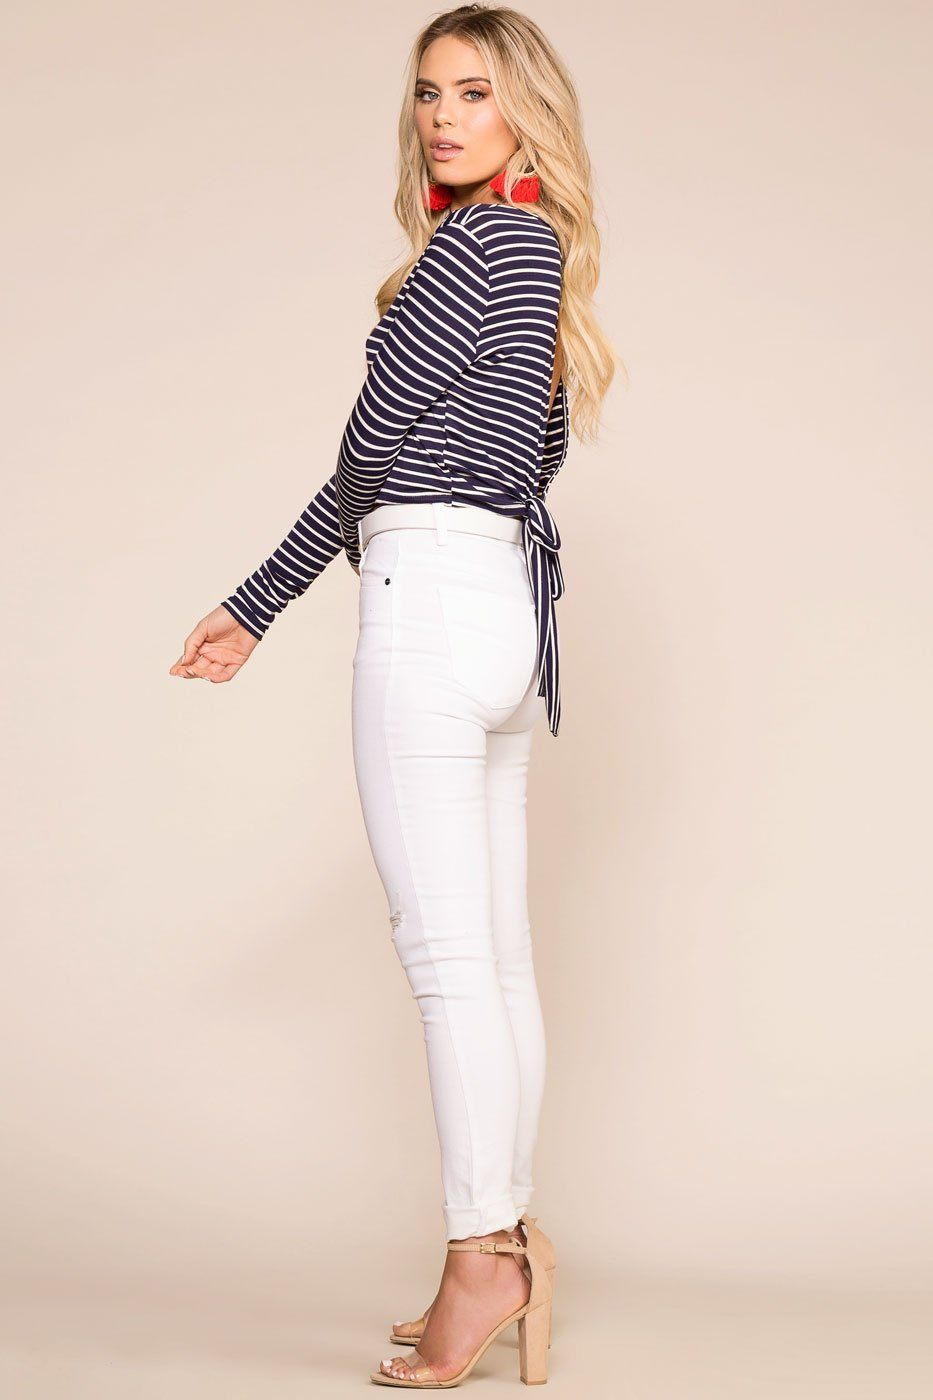 Sammy White Distressed Skinny Jeans | Shop Priceless